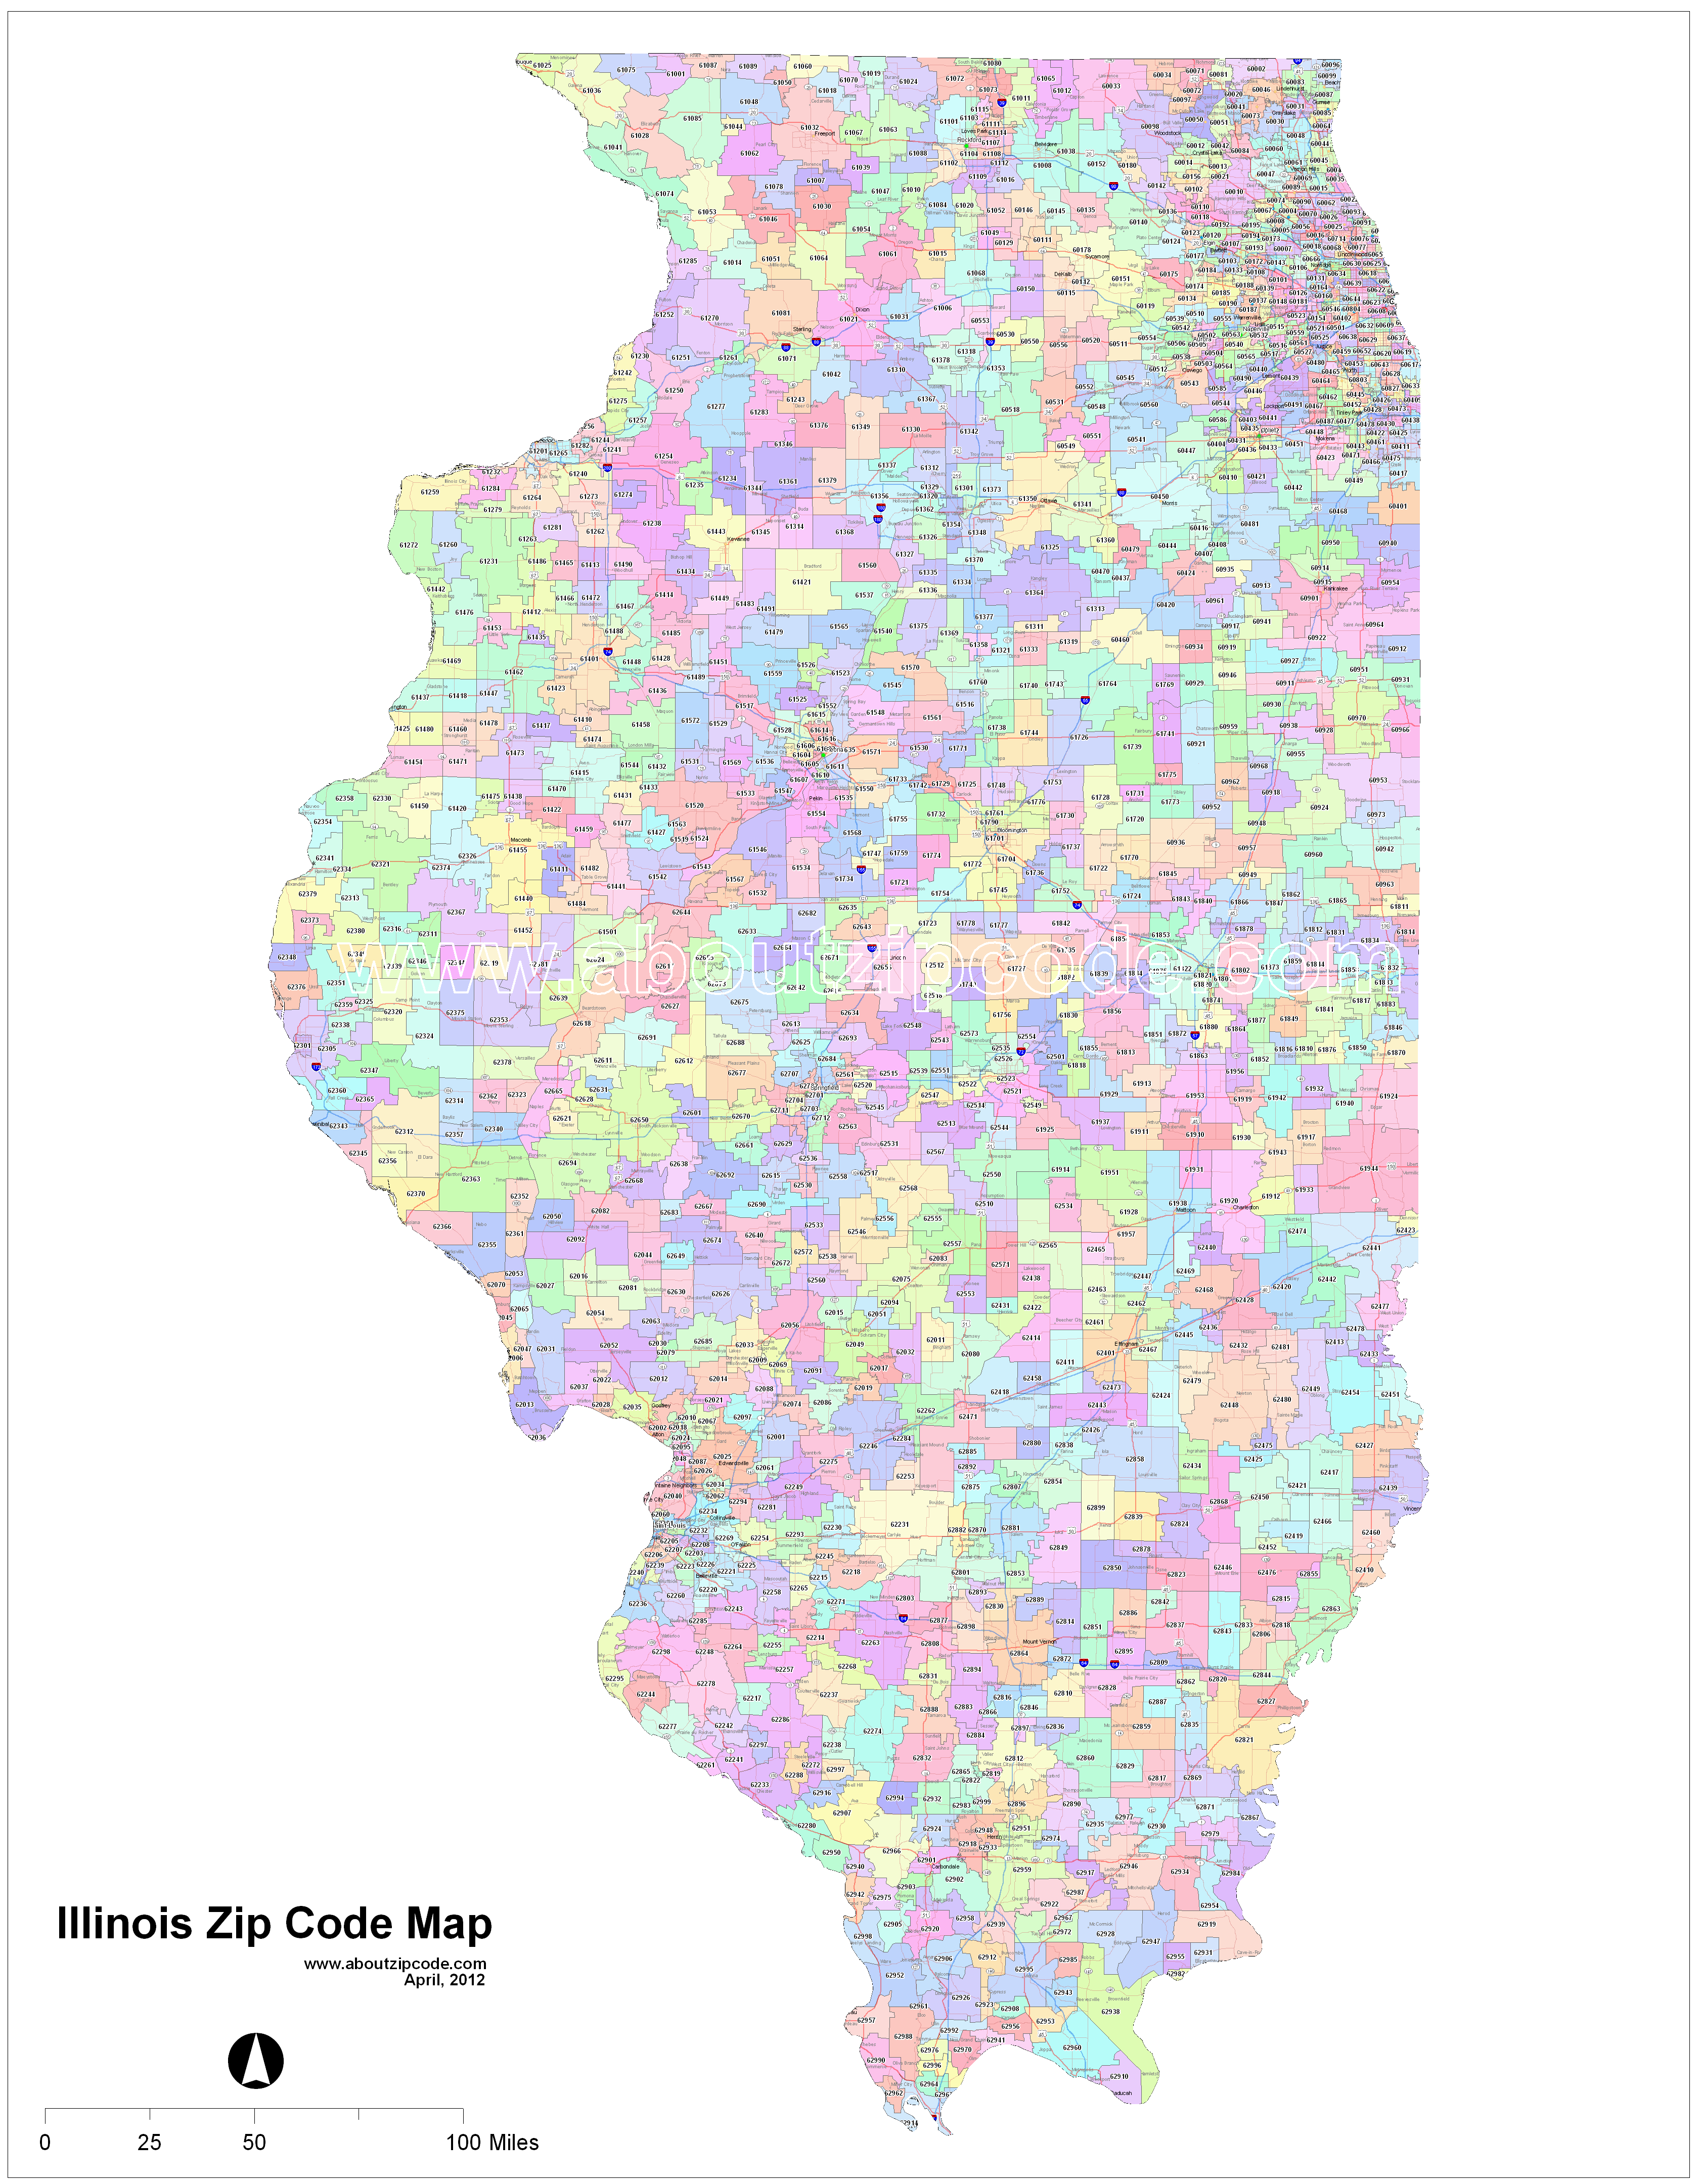 illinois zip code maps  free illinois zip code maps - illinois (il) zip code map